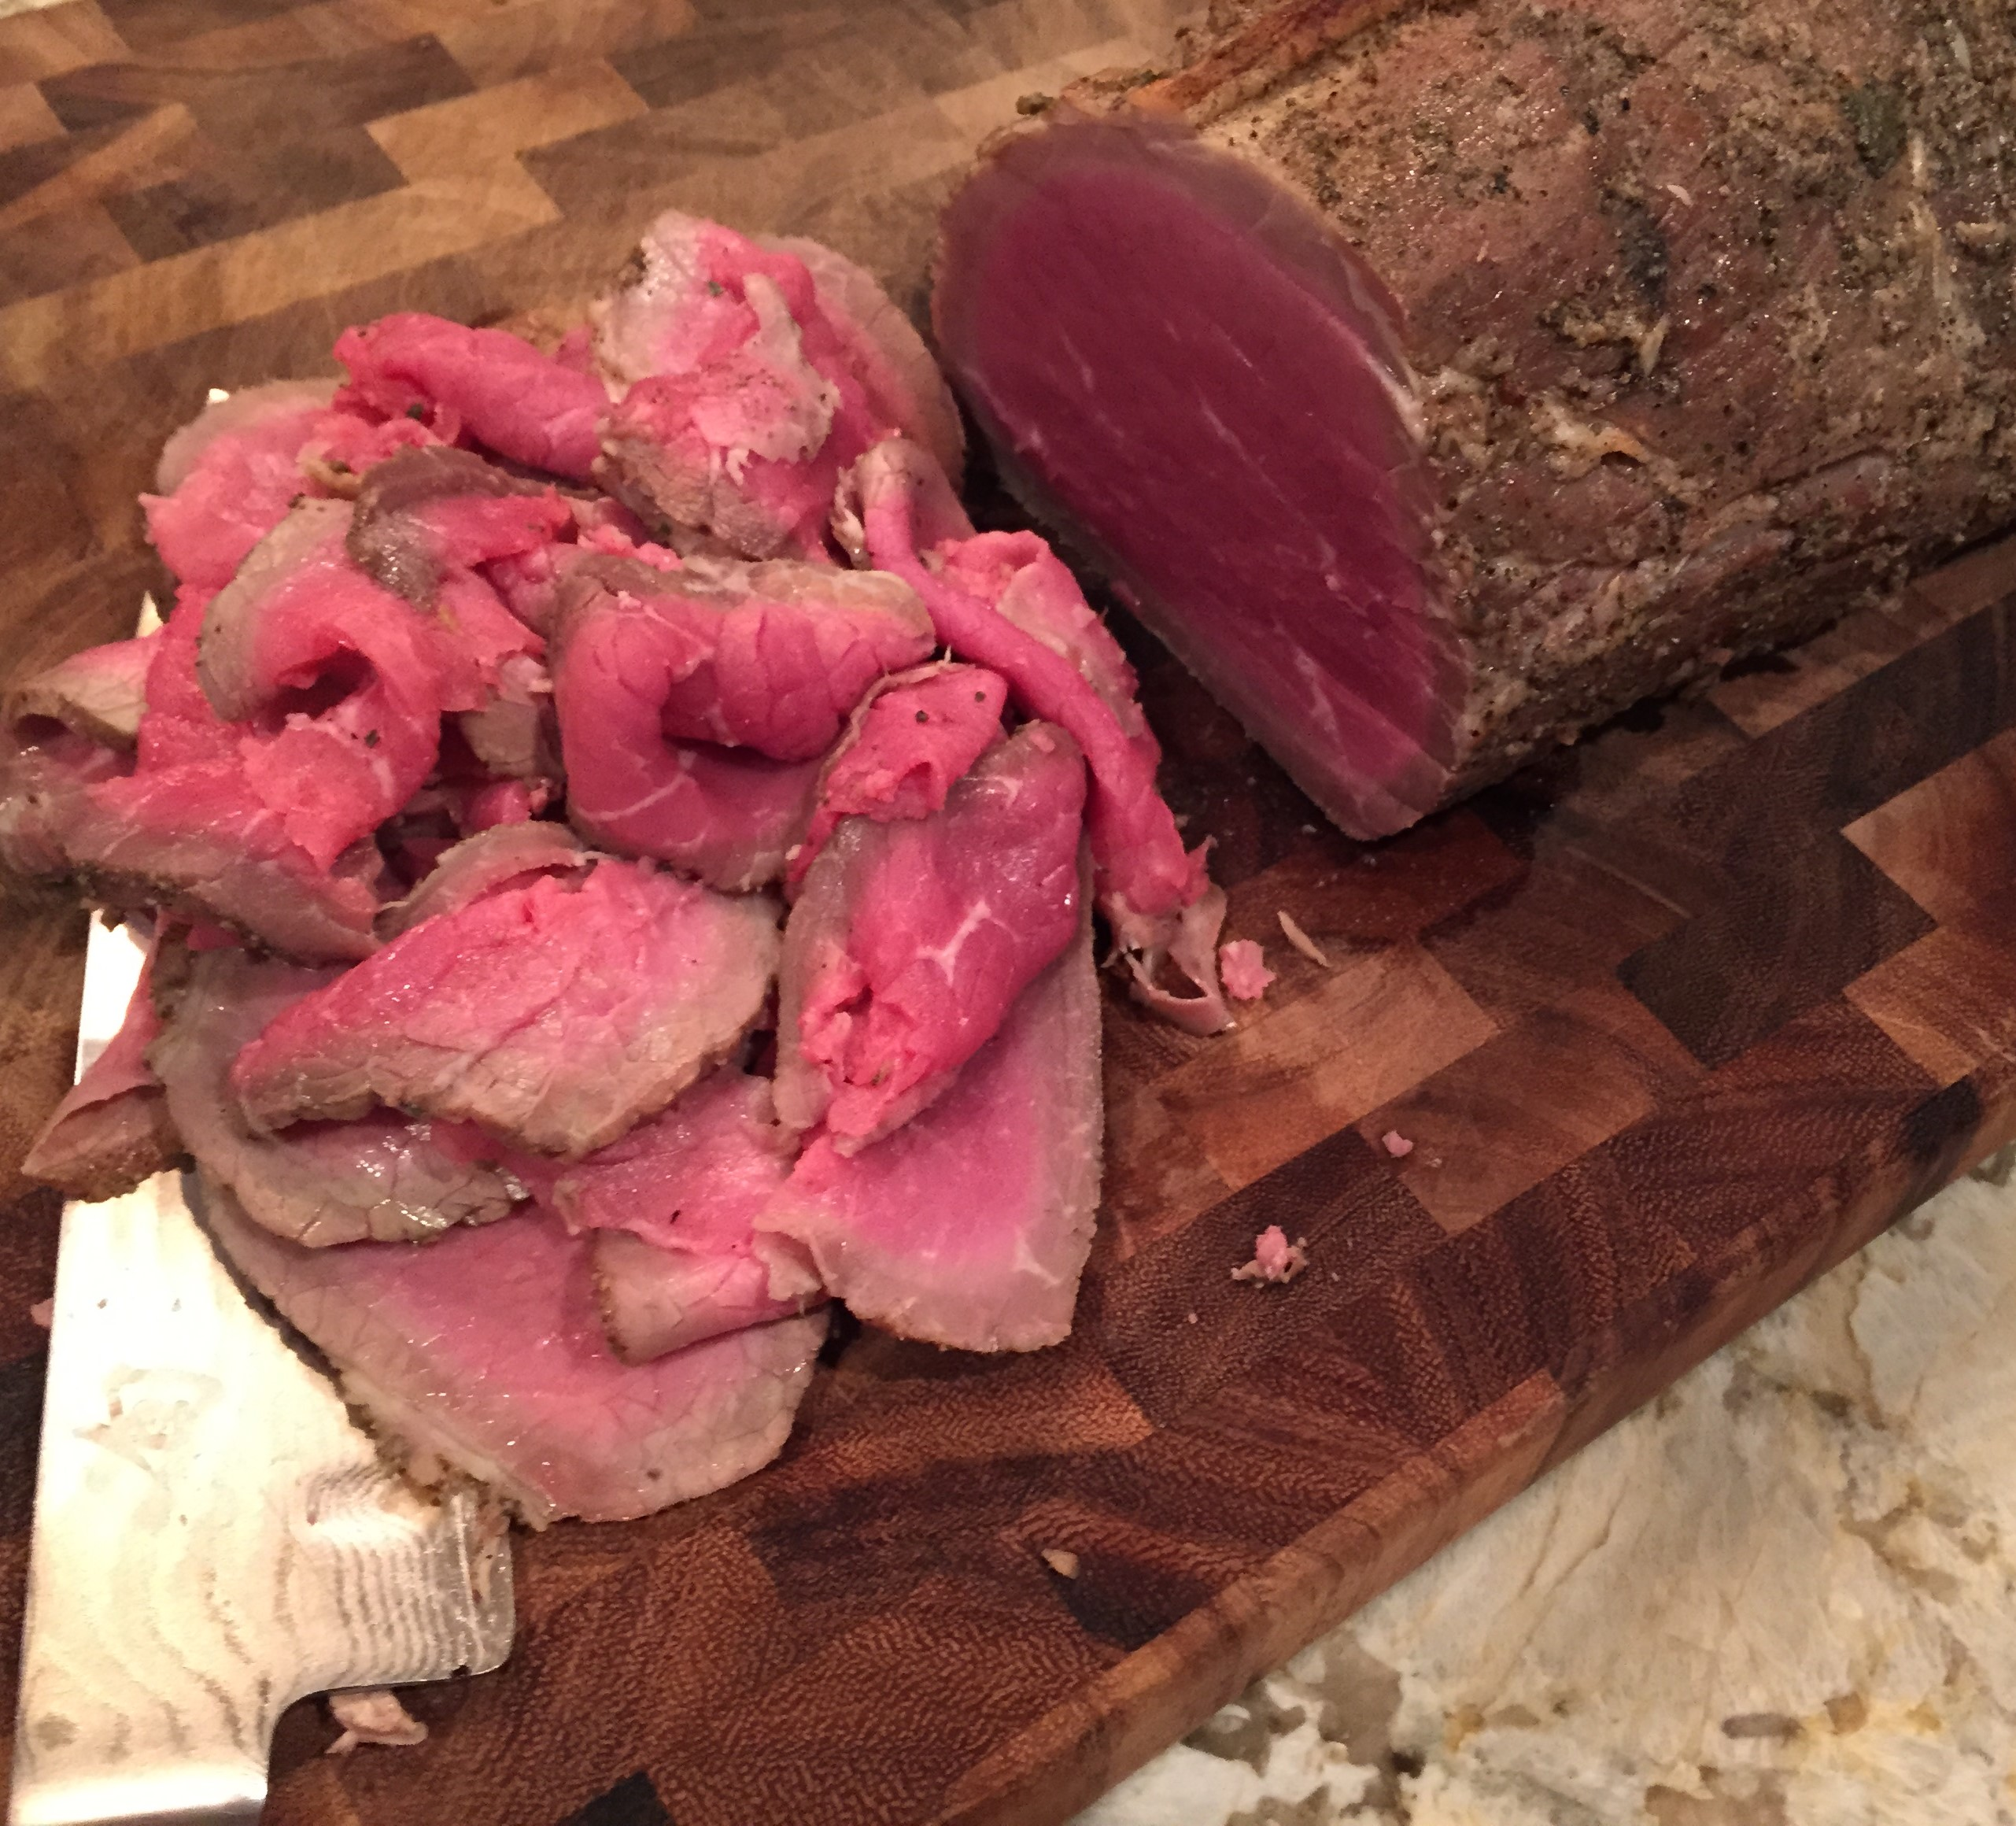 Sliced roast beef package - I Cook This Recipe All The Time At Home It Lasts A Long Time And Does Well In The Freezer If I Have To Freeze It Eye Round Beef Is Also A